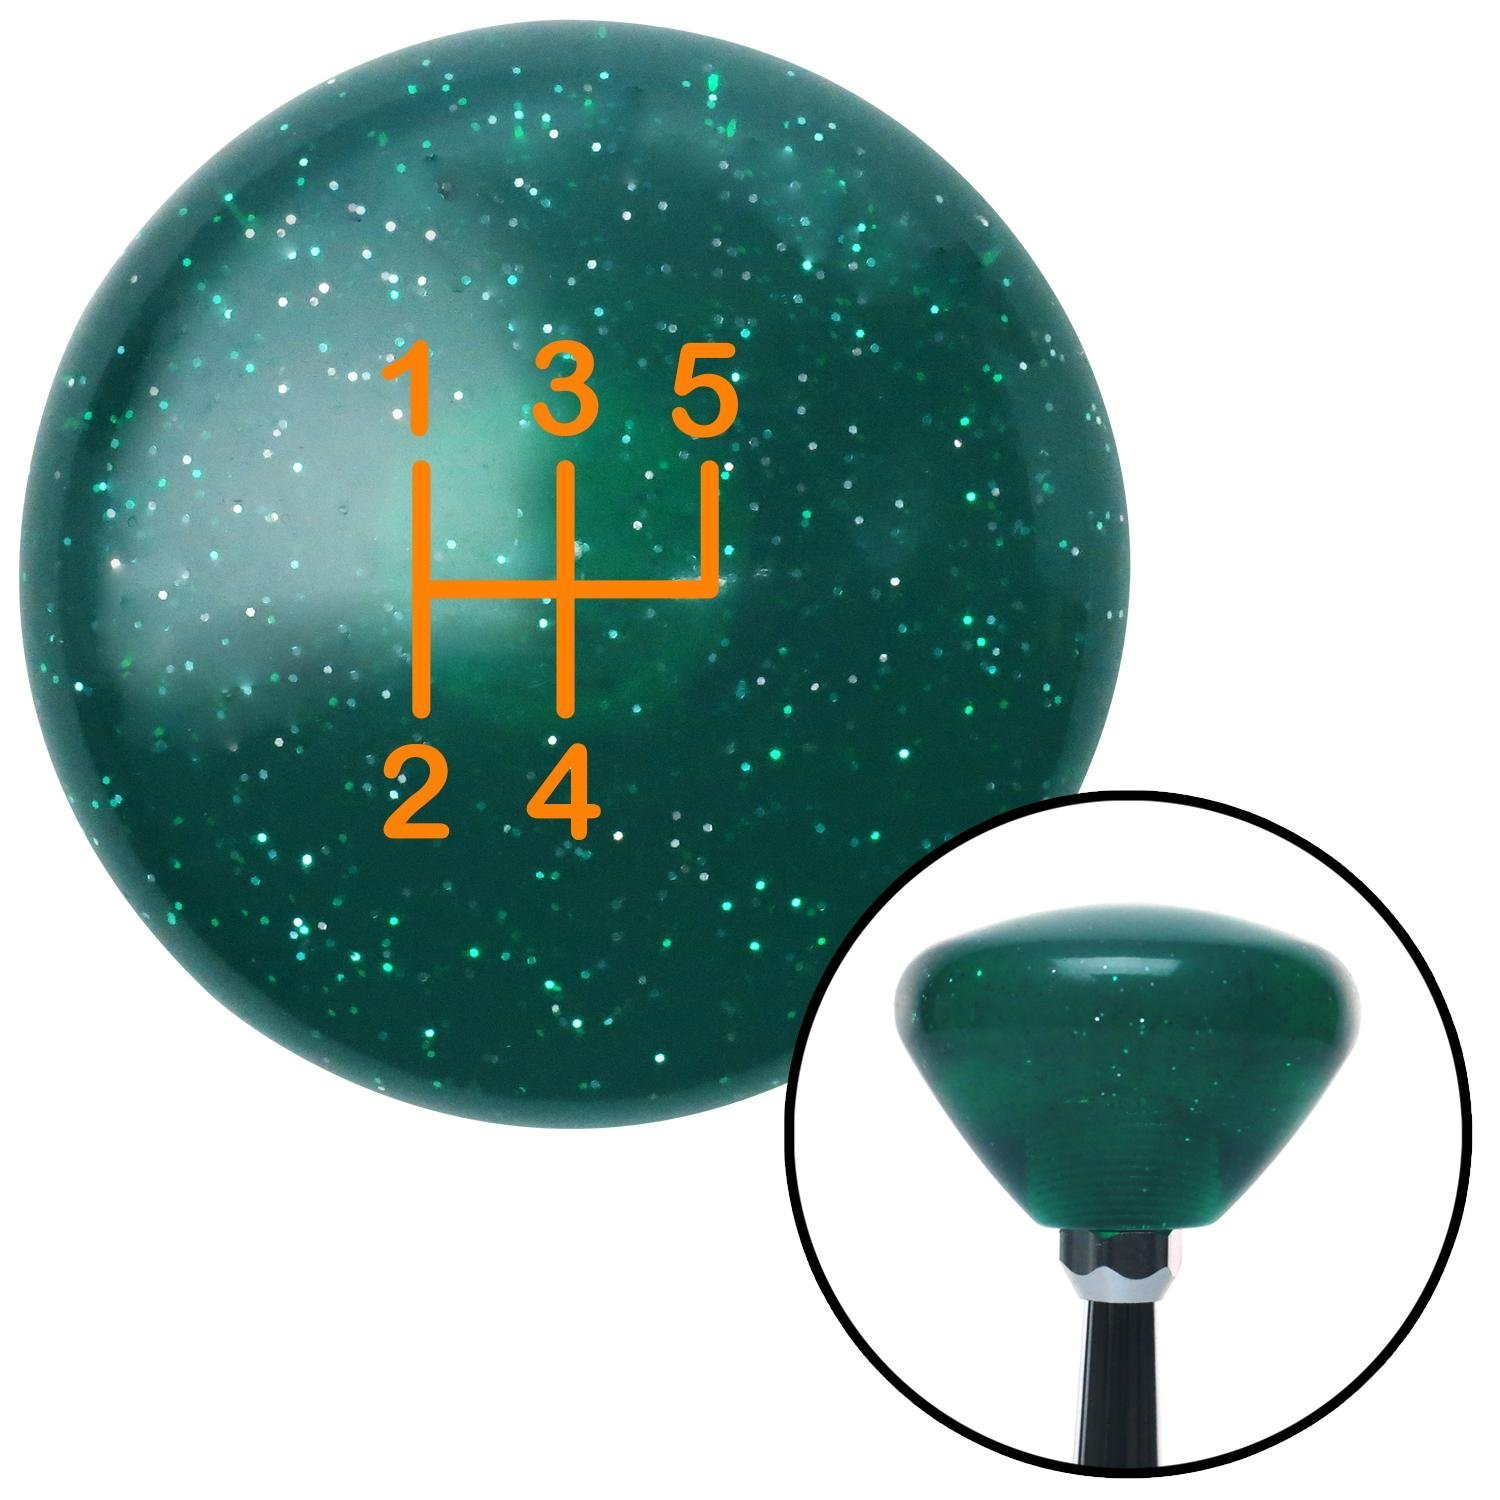 American Shifter 208742 Green Retro Metal Flake Shift Knob with M16 x 1.5 Insert Orange Shift Pattern 49n